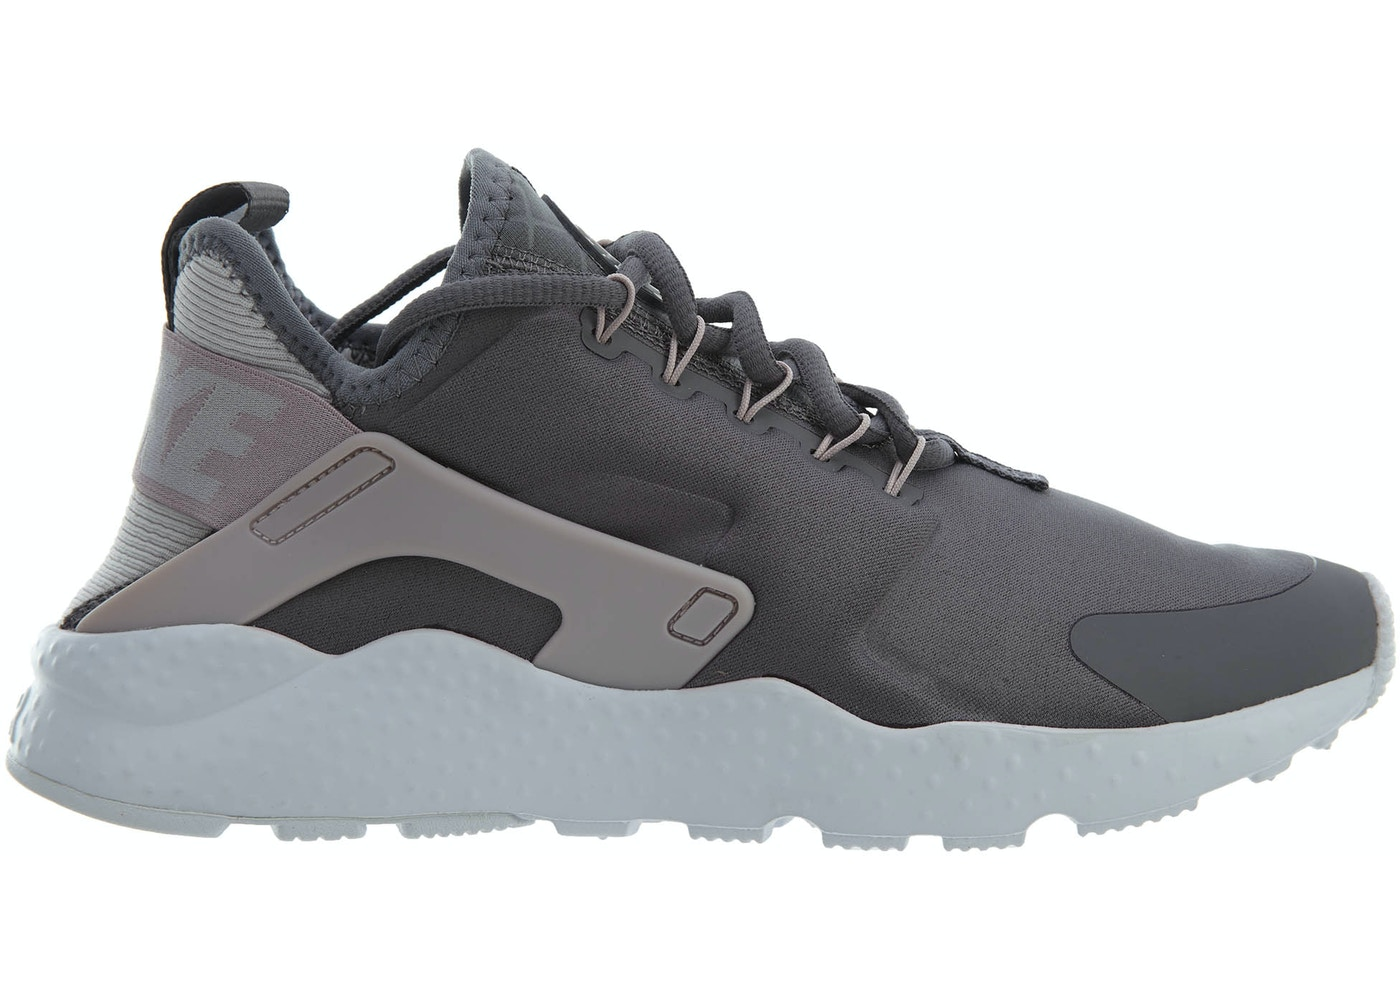 5969747a64f9 Air Huarache Run Ultra Gunsmoke Vast Grey (W) - 819151-016